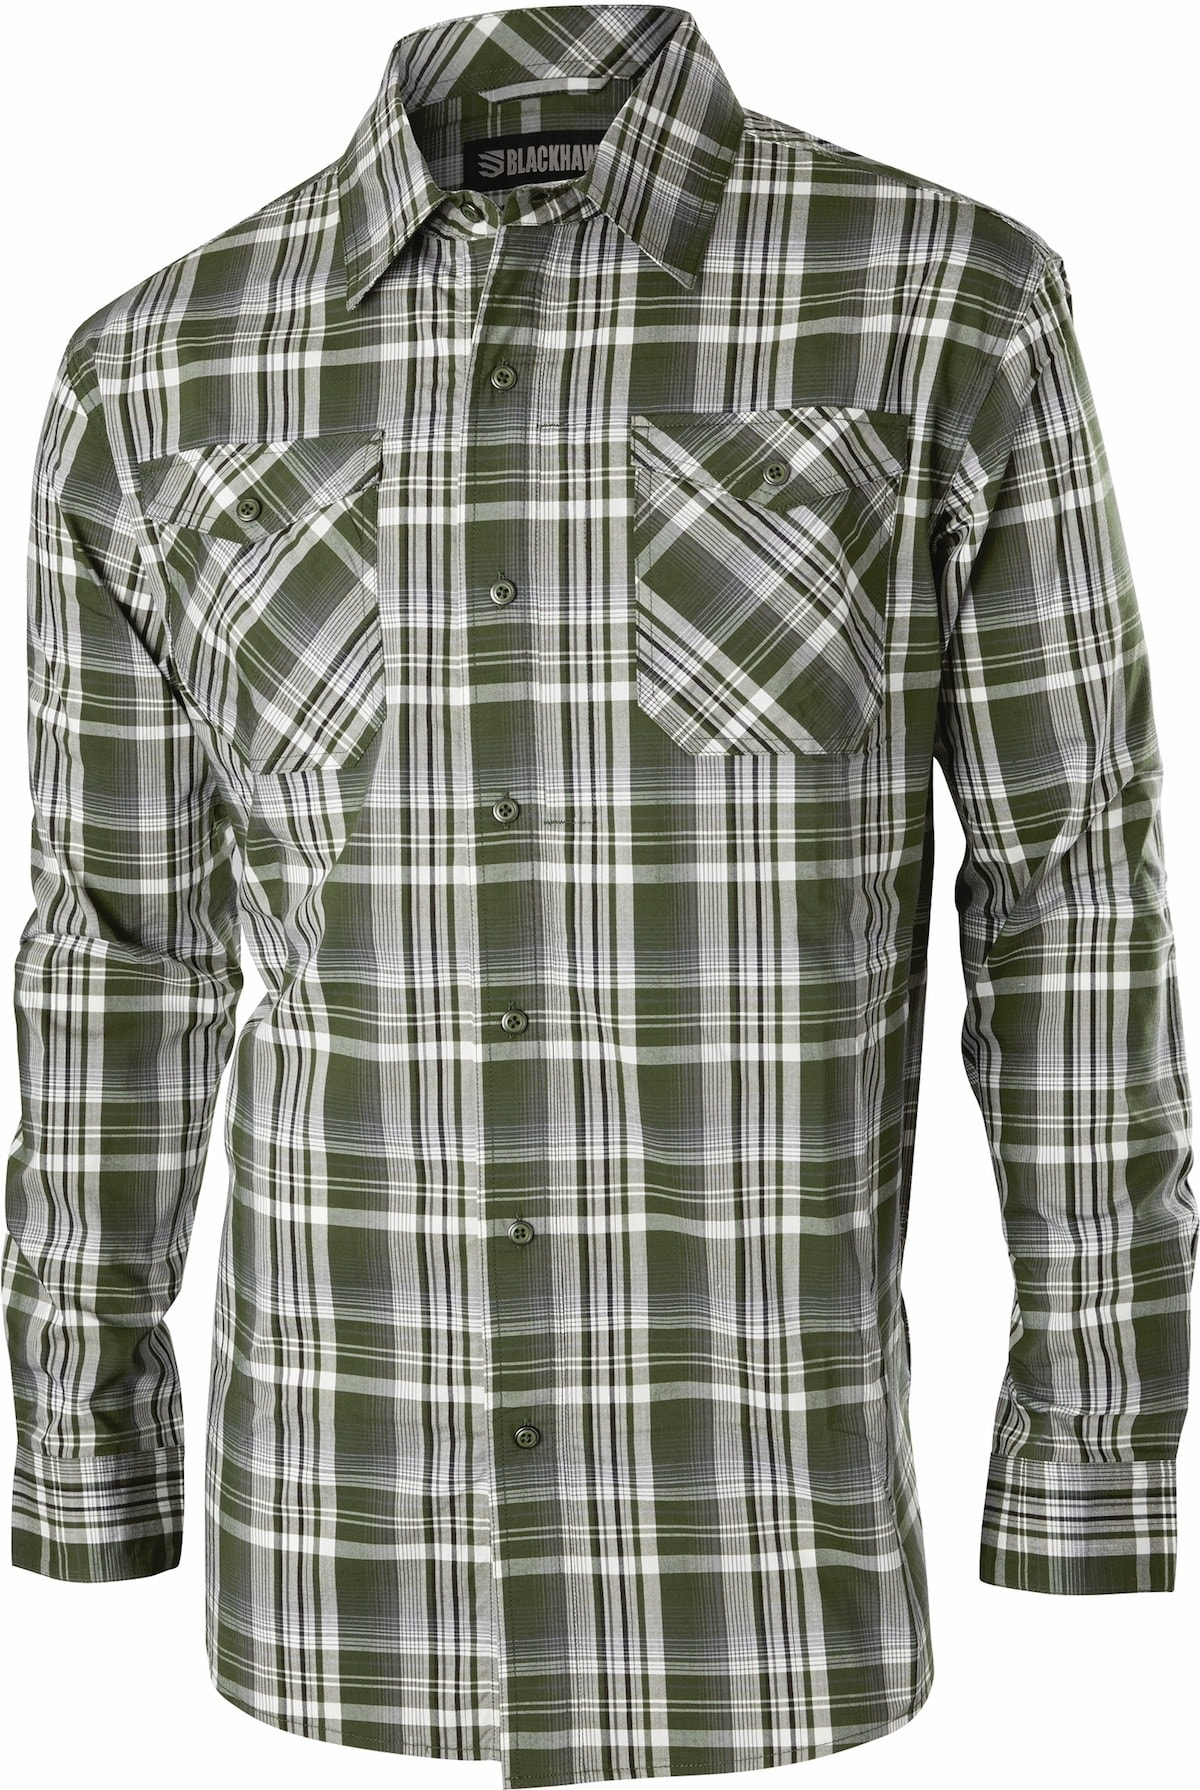 Blackhawk aims to dress concealed carriers this fall with button-ups, polos, pants and jackets. (Photo: Blackhawk)